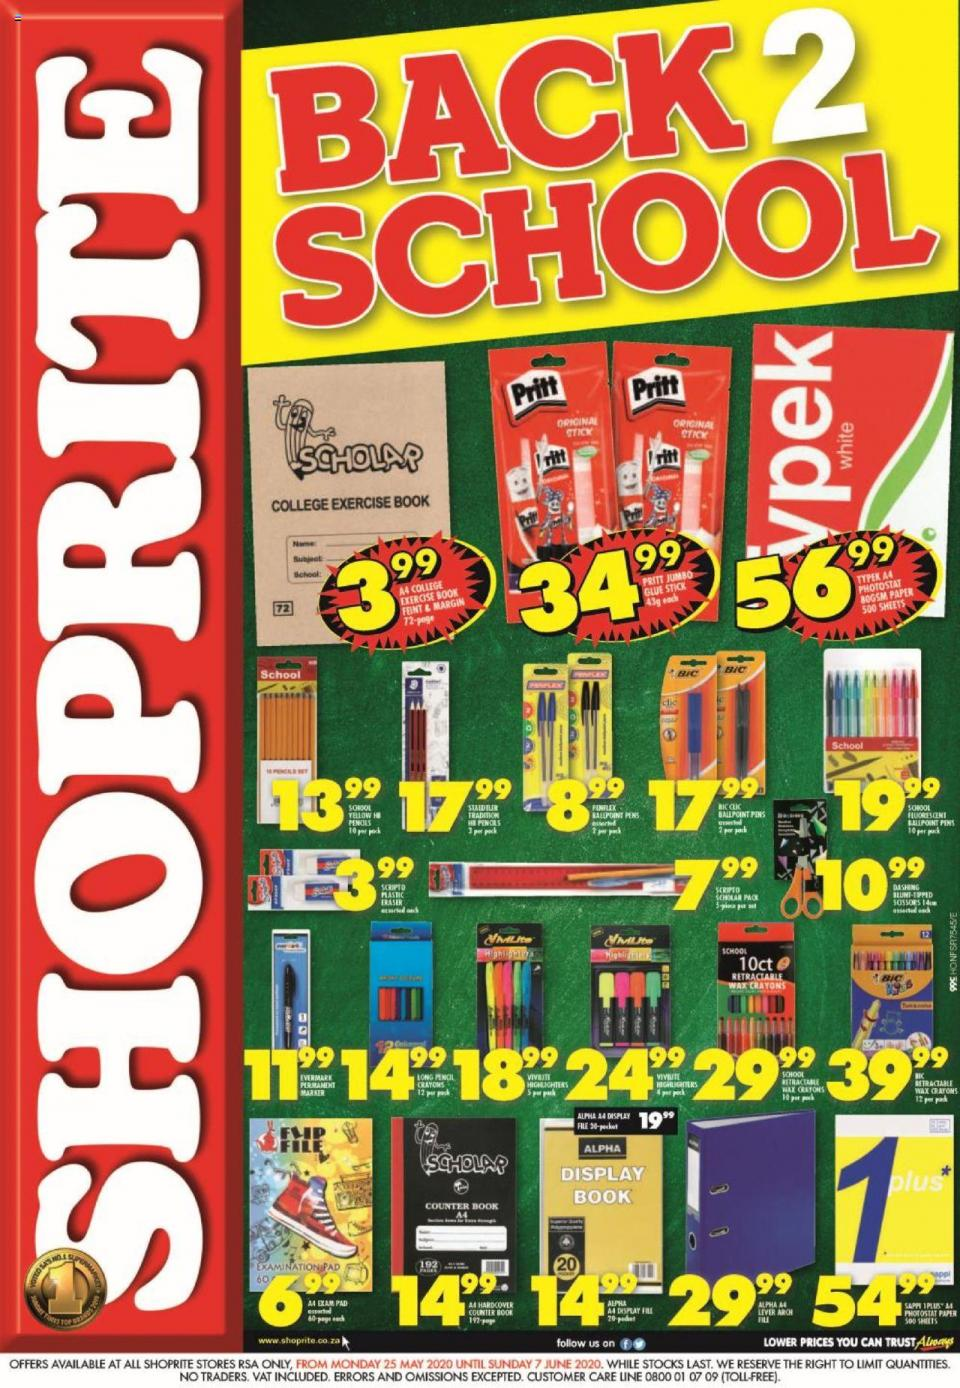 shoprite specials back to school promotion 25 may 2020